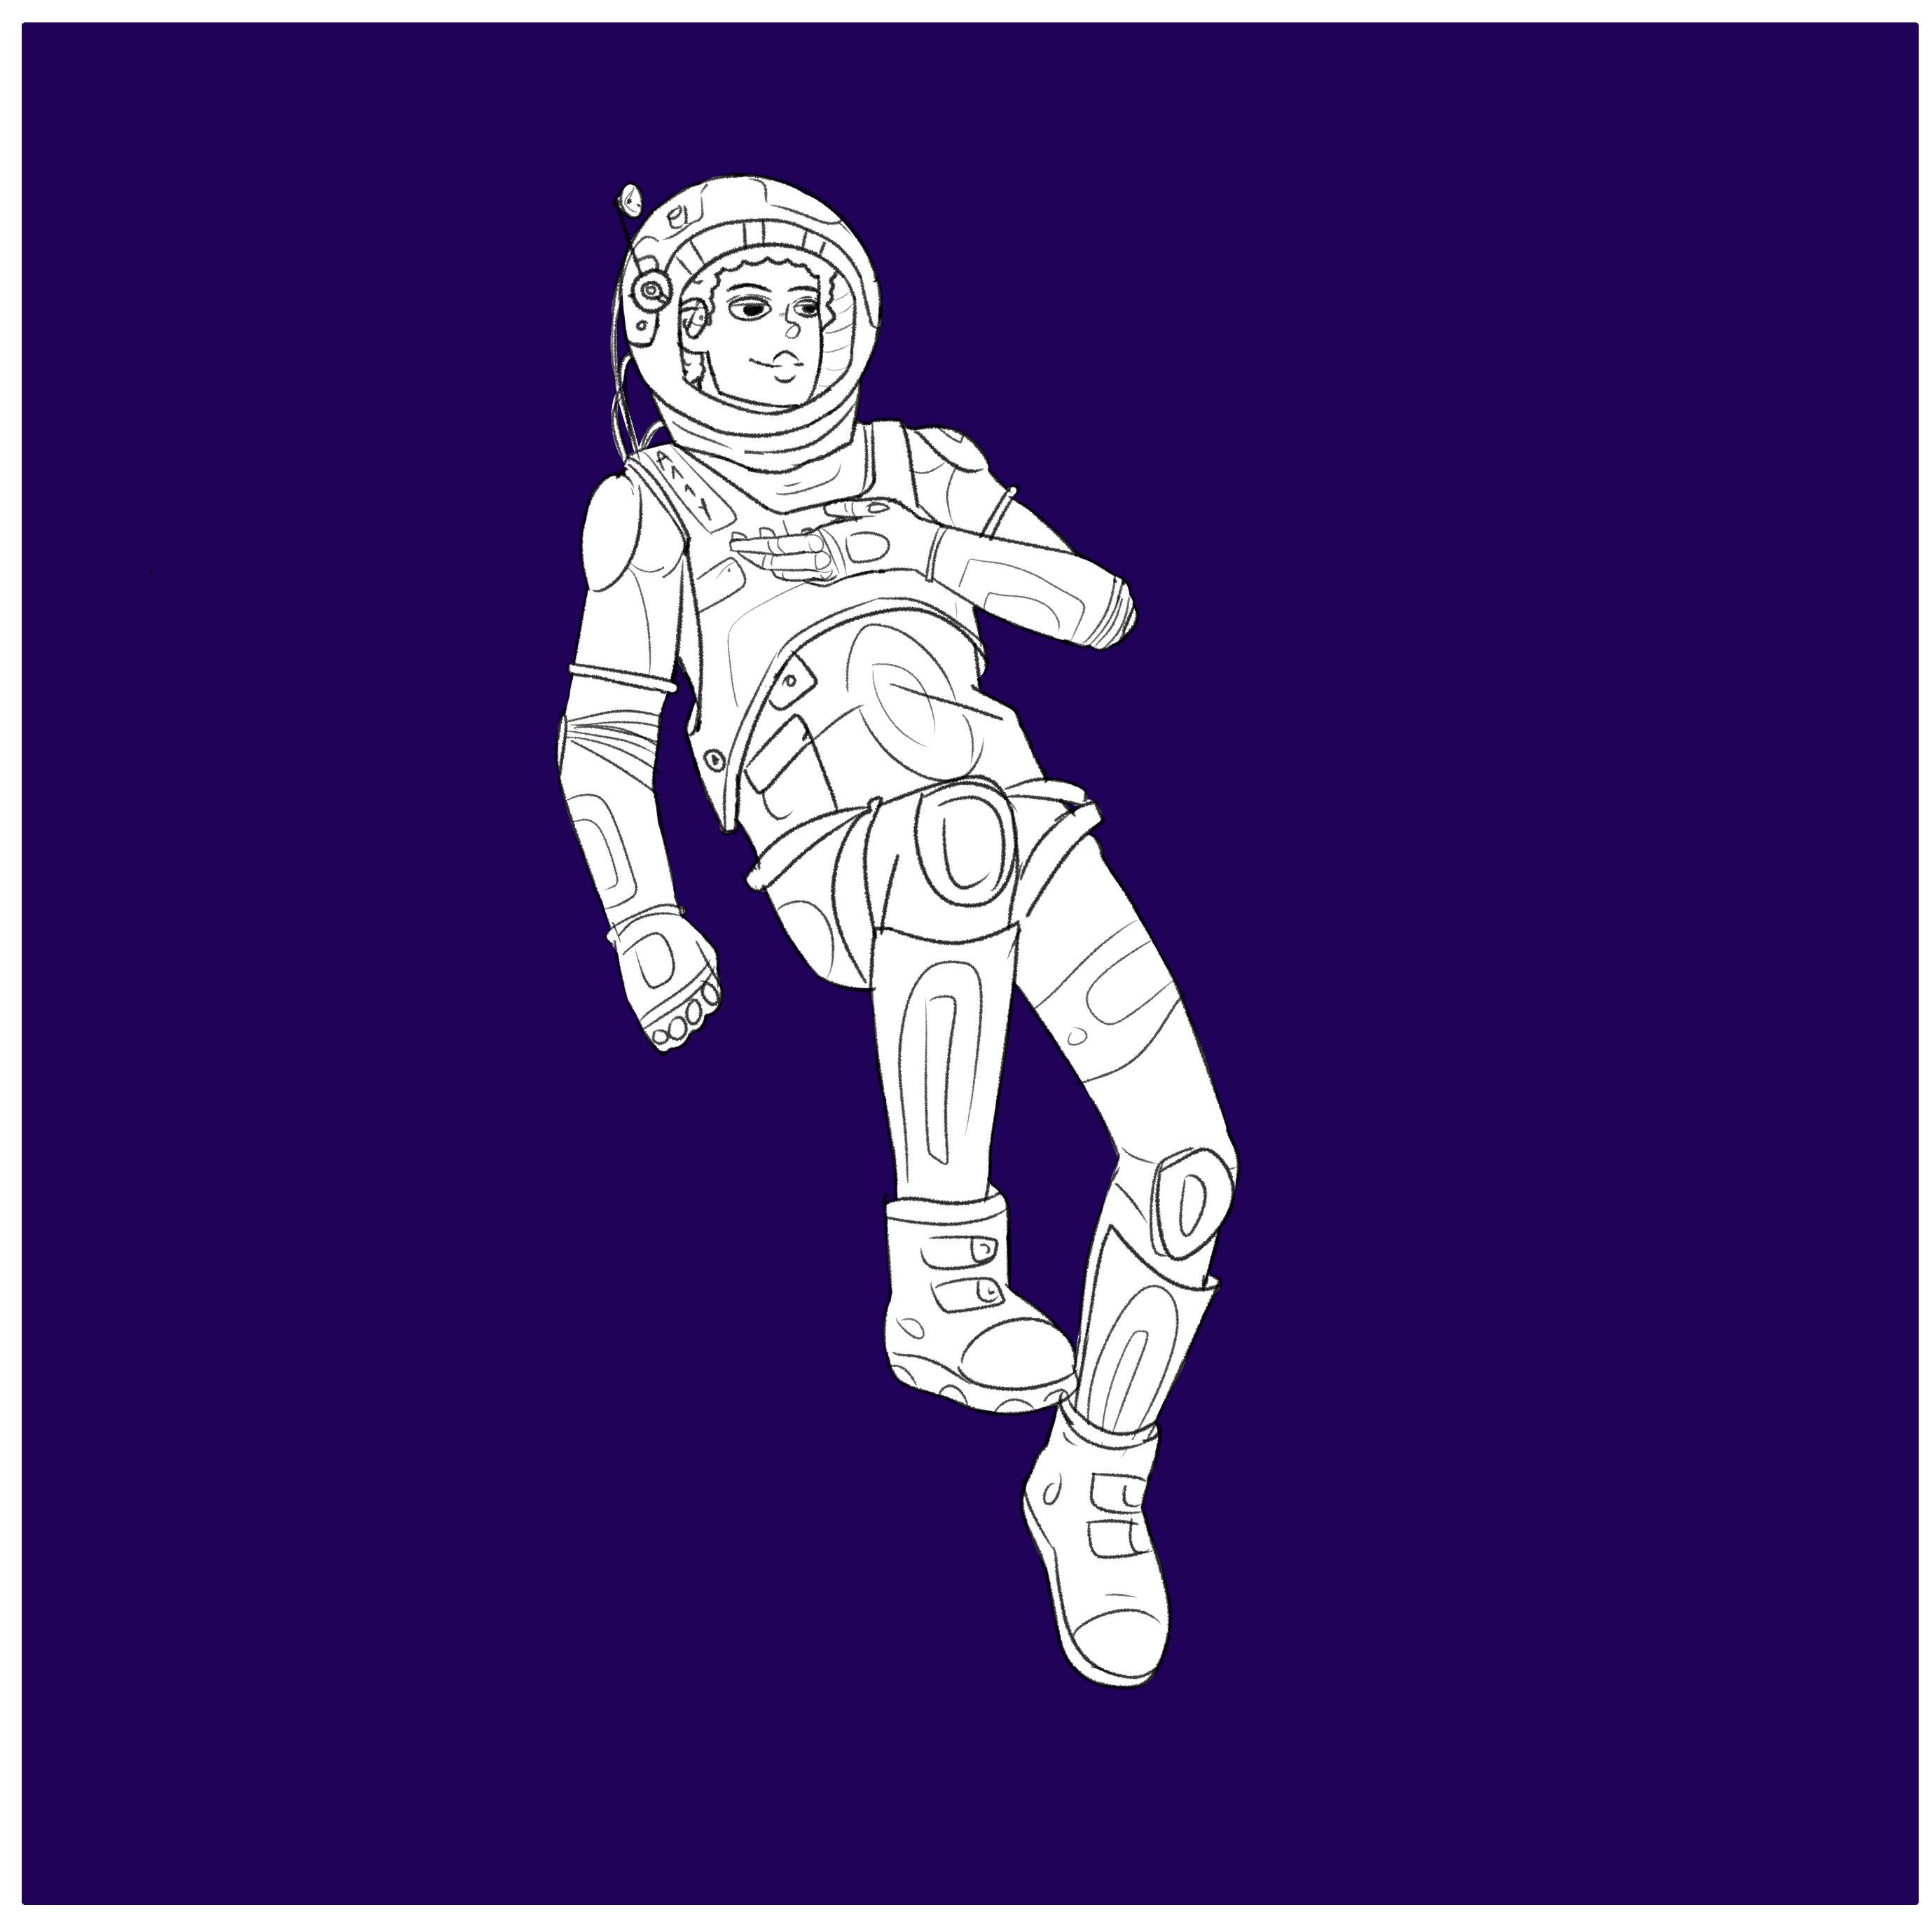 a deaf person space walking.